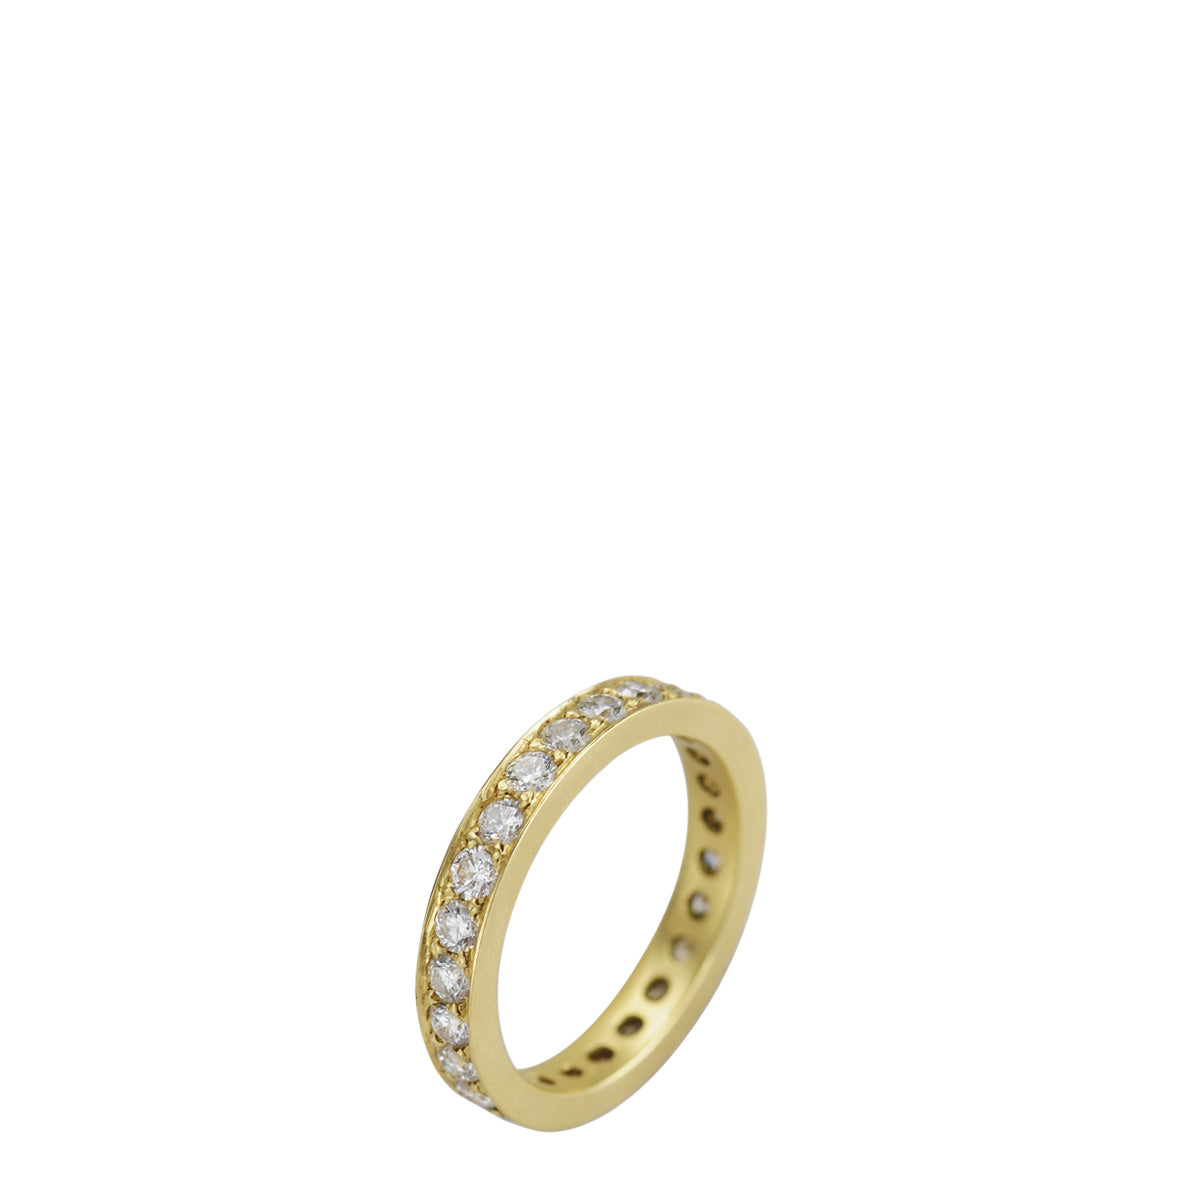 18K Gold 3.5mm Band with 2.5mm Diamonds